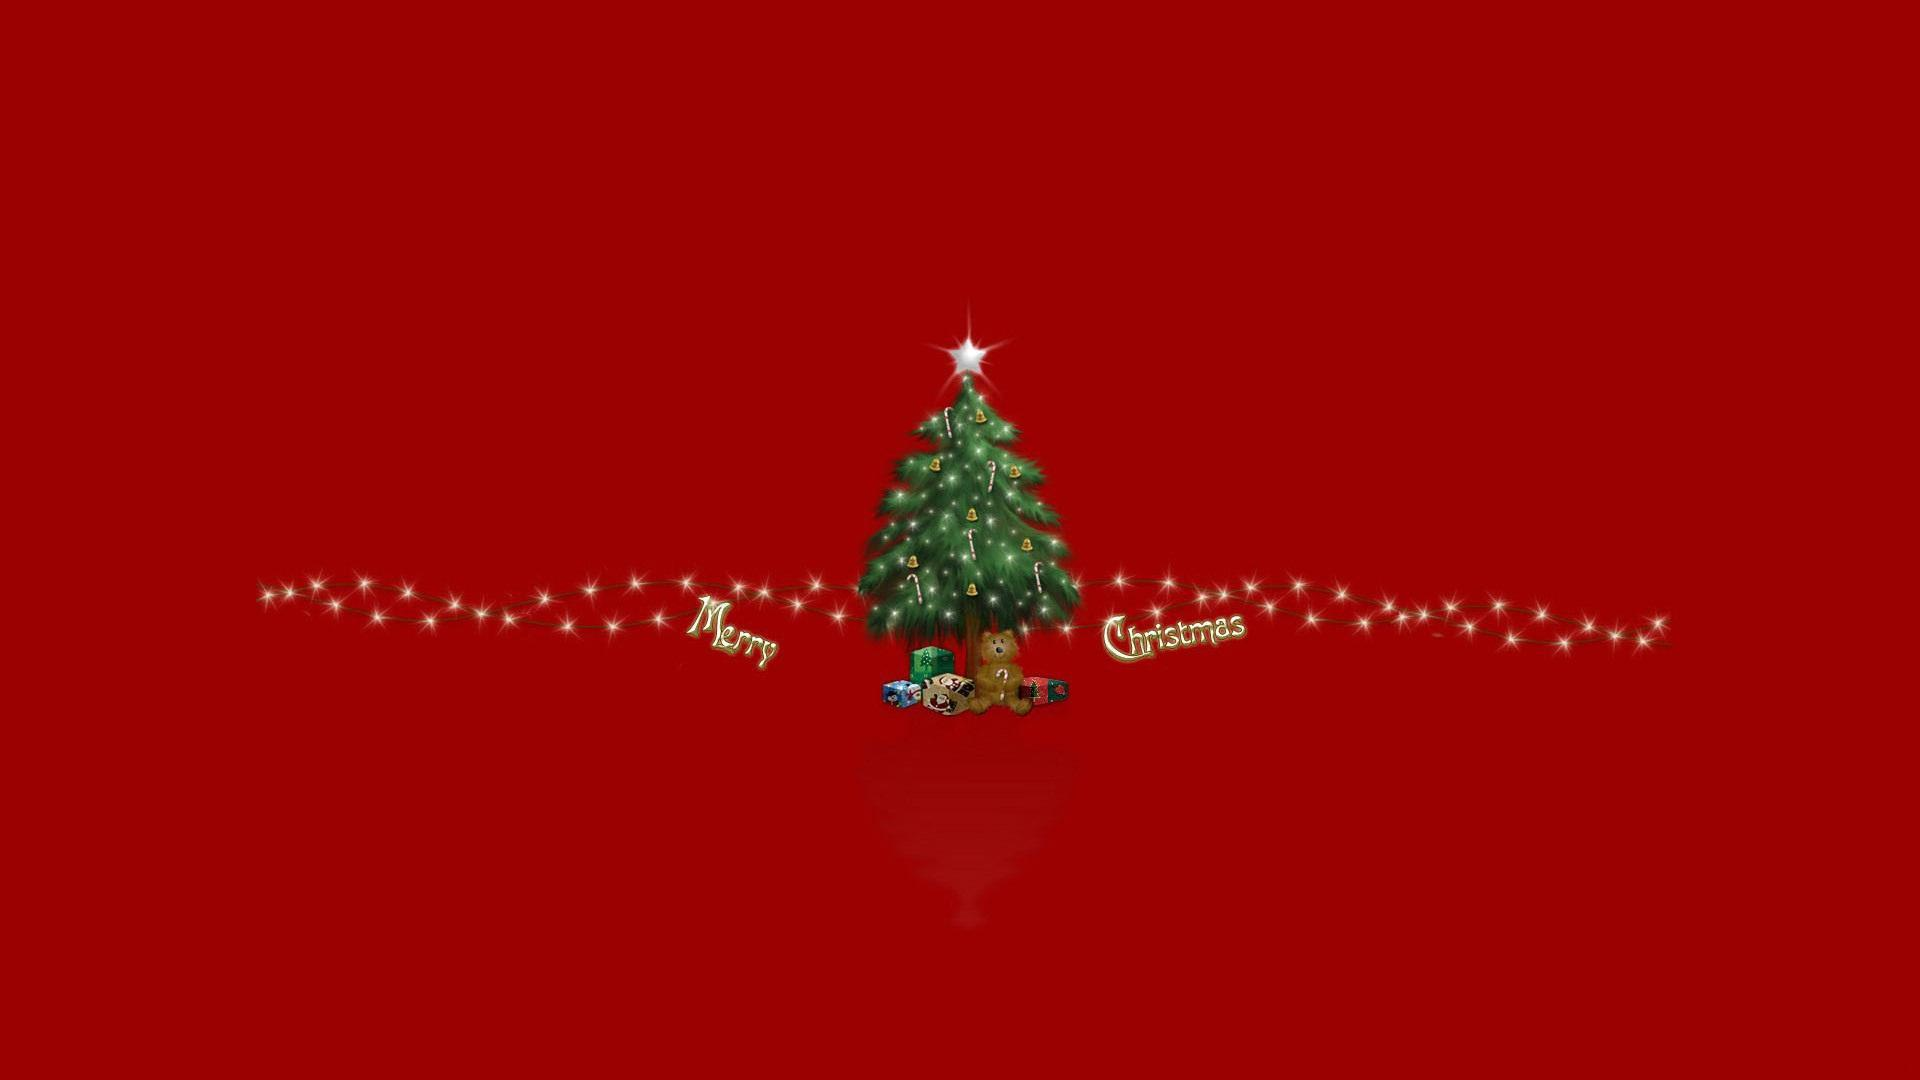 Iphone X Moving Wallpaper From Commercial Small Little Christmas Tree Hd Desktop Wallpaper